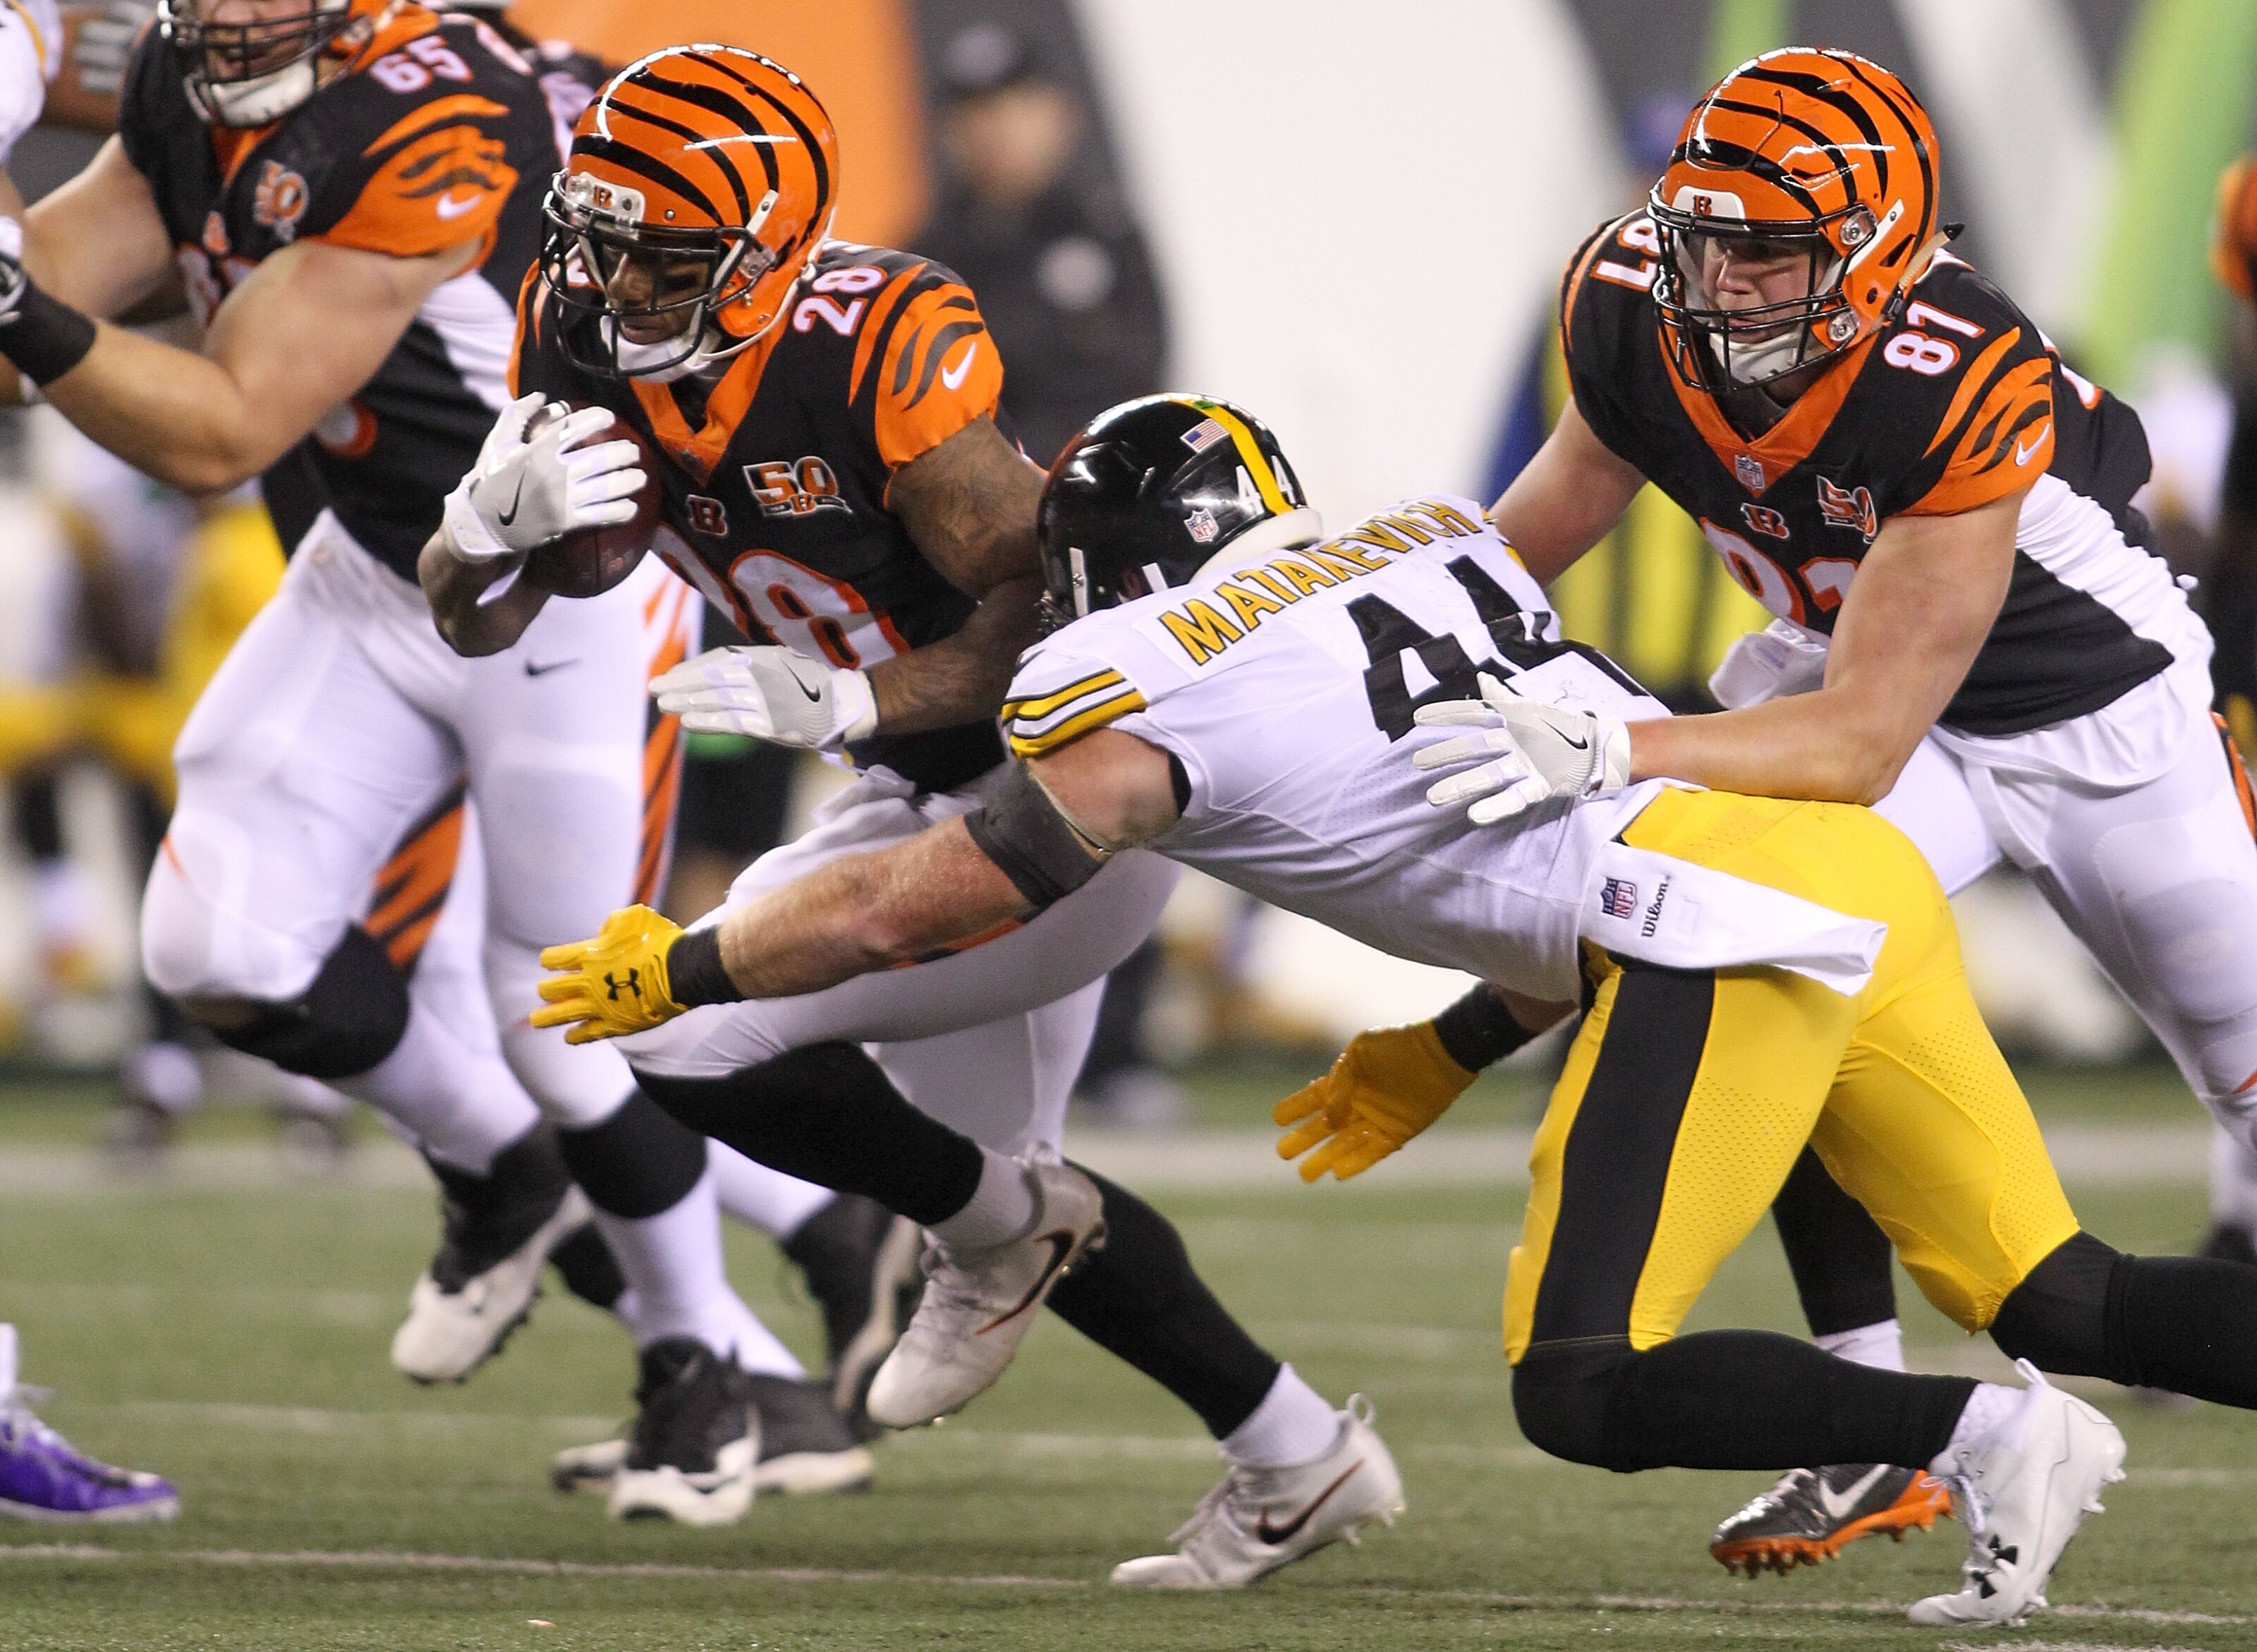 885801036-pittsburgh-steelers-v-cincinnati-bengals.jpg